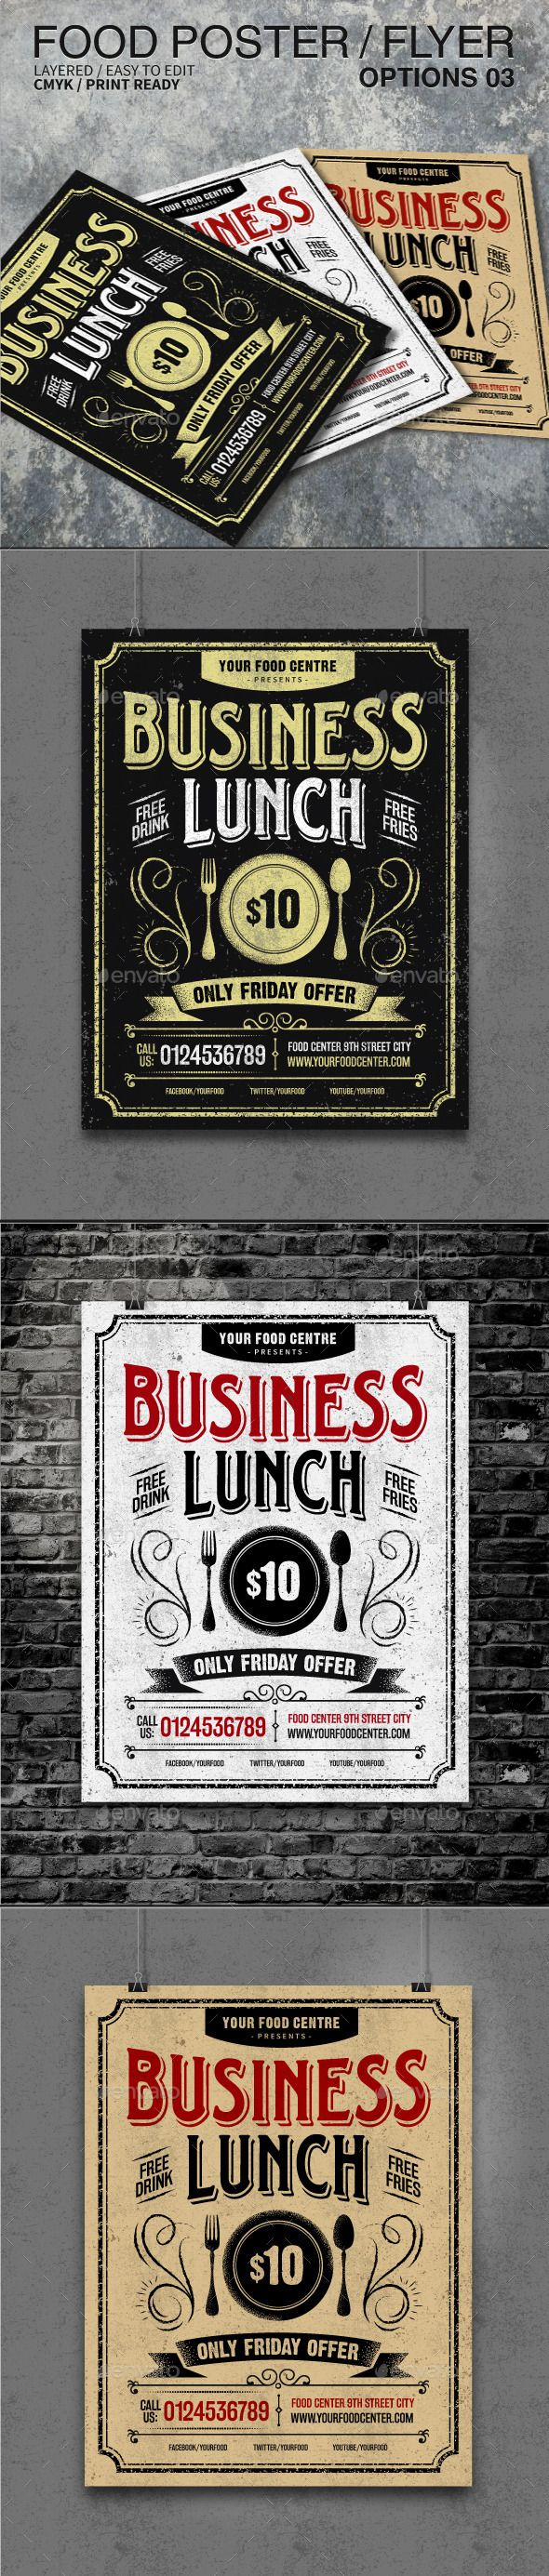 Typography Poster Flyer Template Psd Design Download